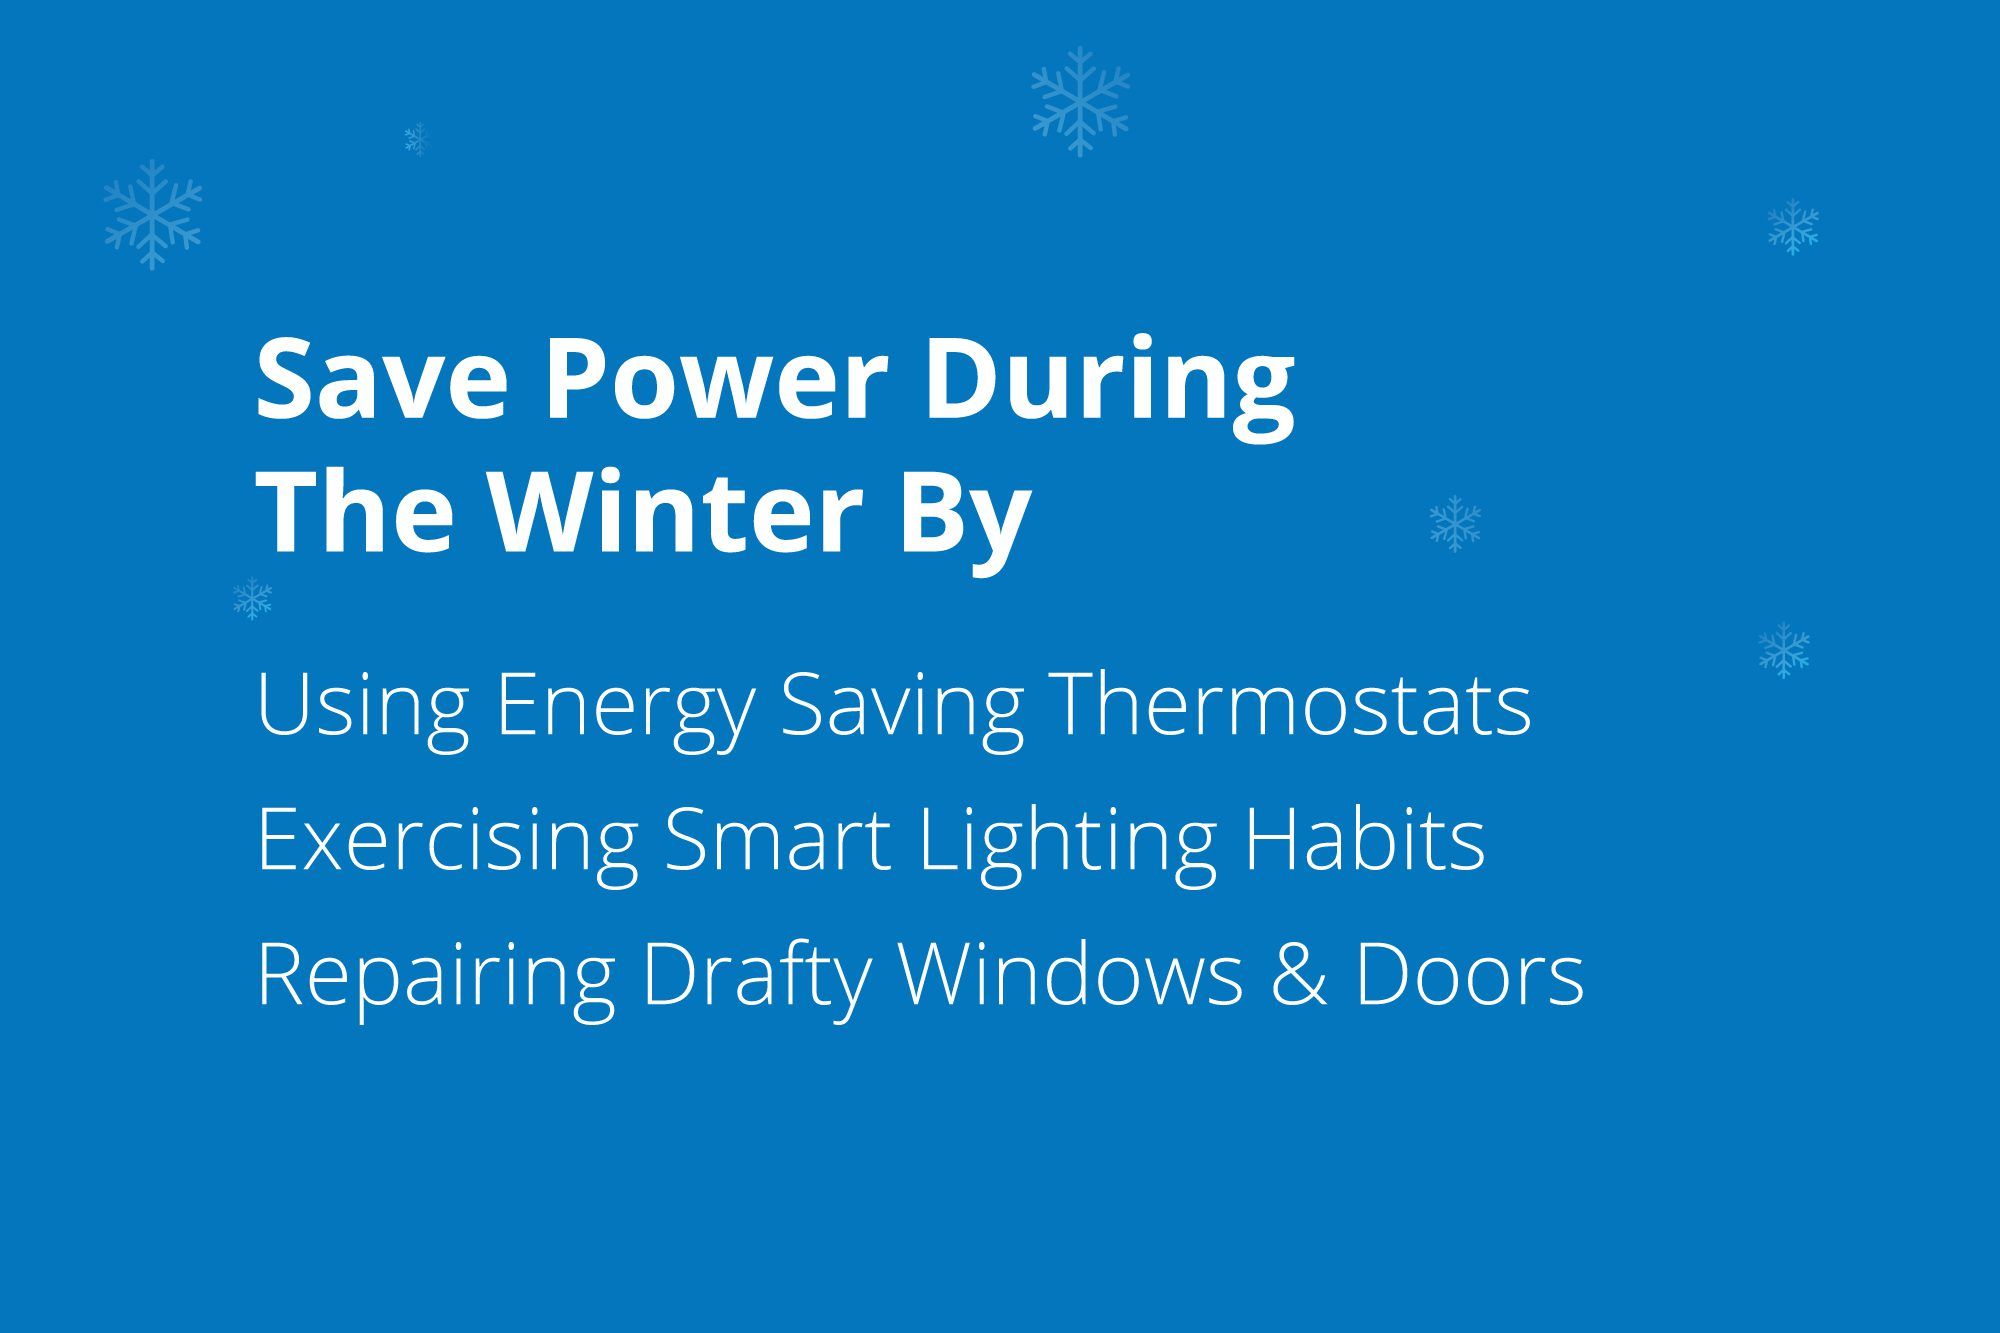 Save power this winter by